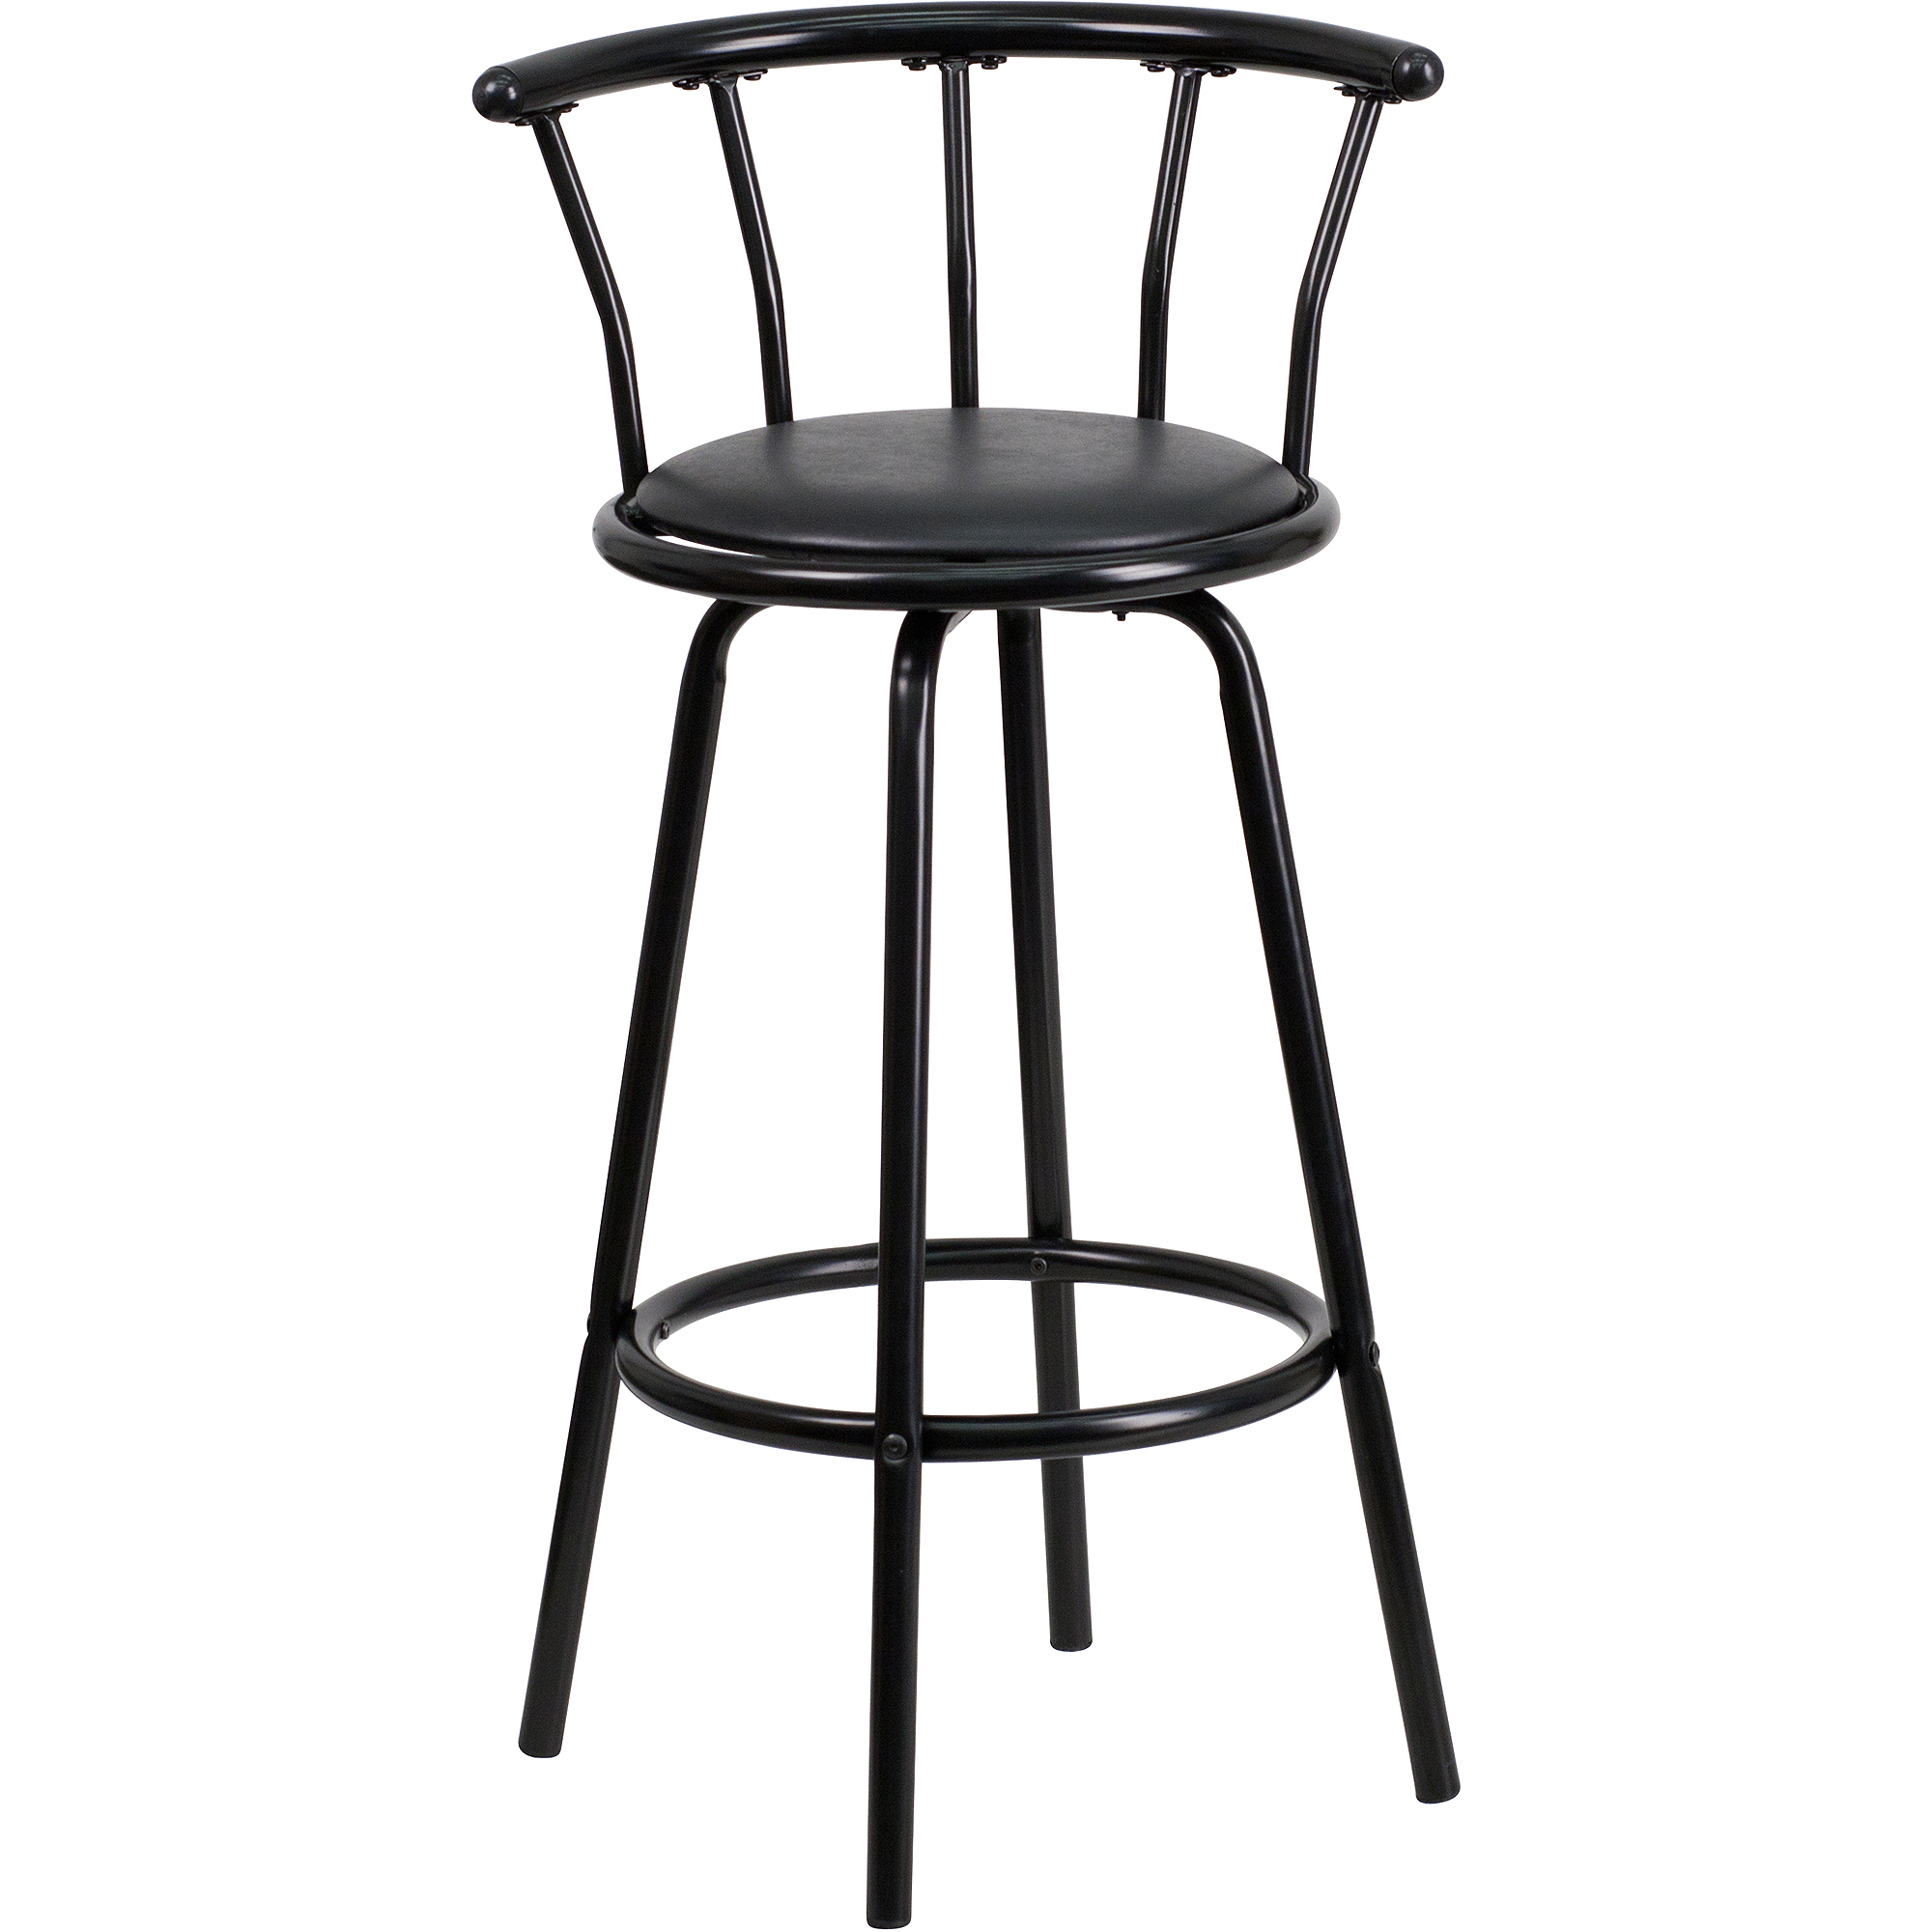 Bar Stools For A Bar Part - 16: Flash Furniture Crown Back Black Metal Bar Stool With Black Vinyl Swivel  Seat - Walmart.com